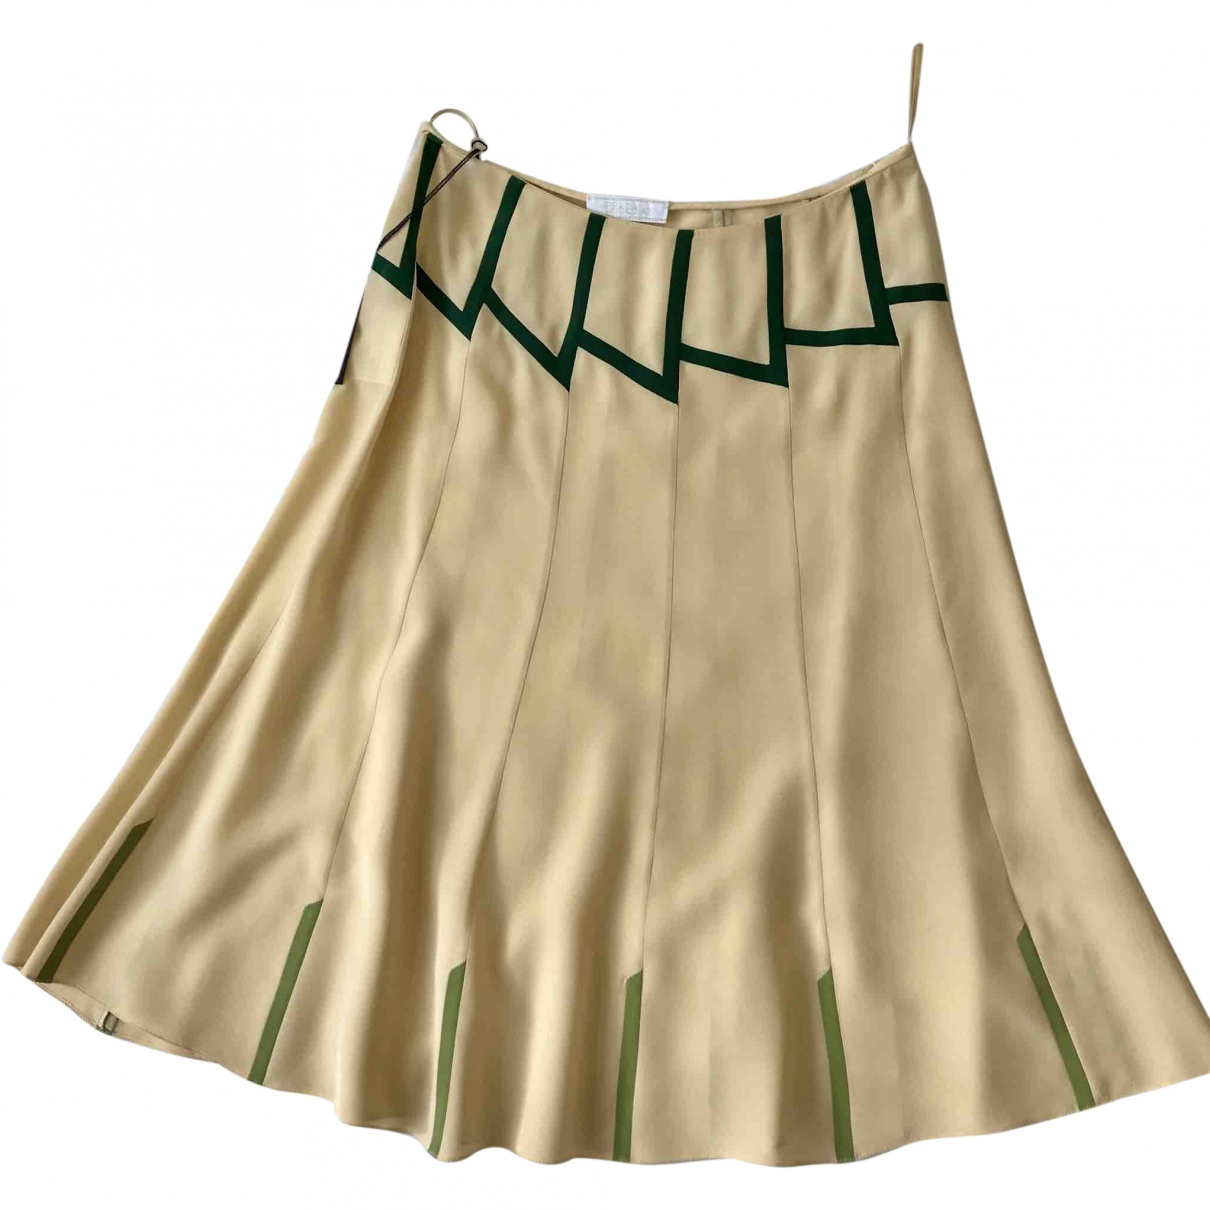 Prada \N Ecru Silk skirt for Women 40 IT